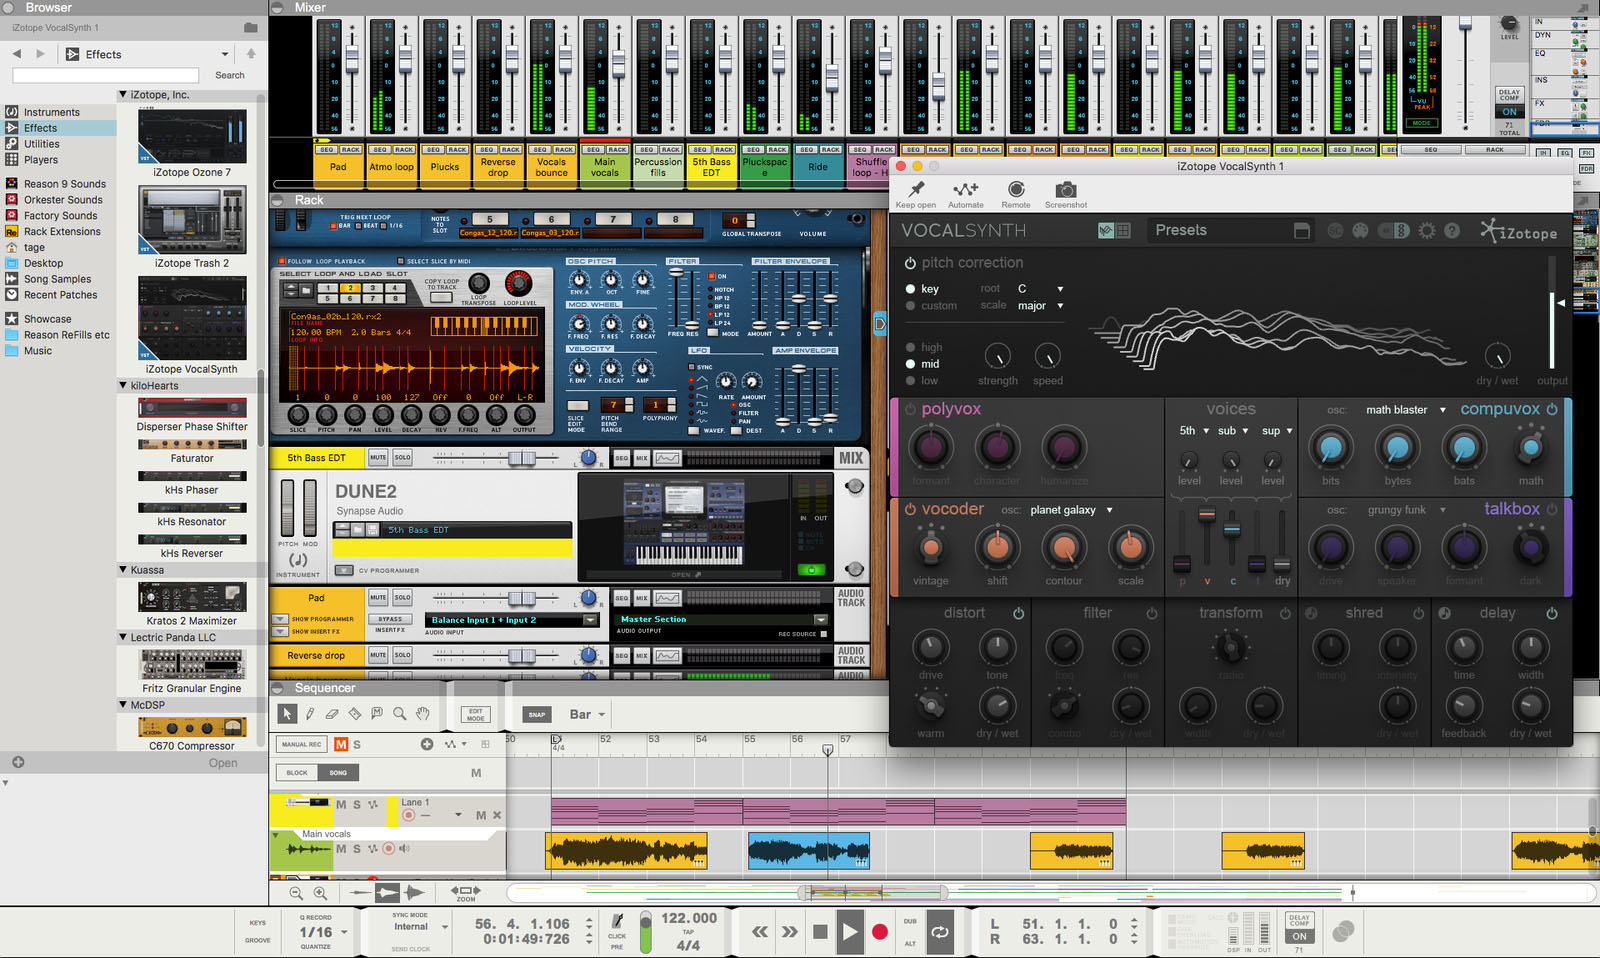 Reason 11 by Propellerhead Comes to Ableton Live and Other DAWs - Electronic Music Collective